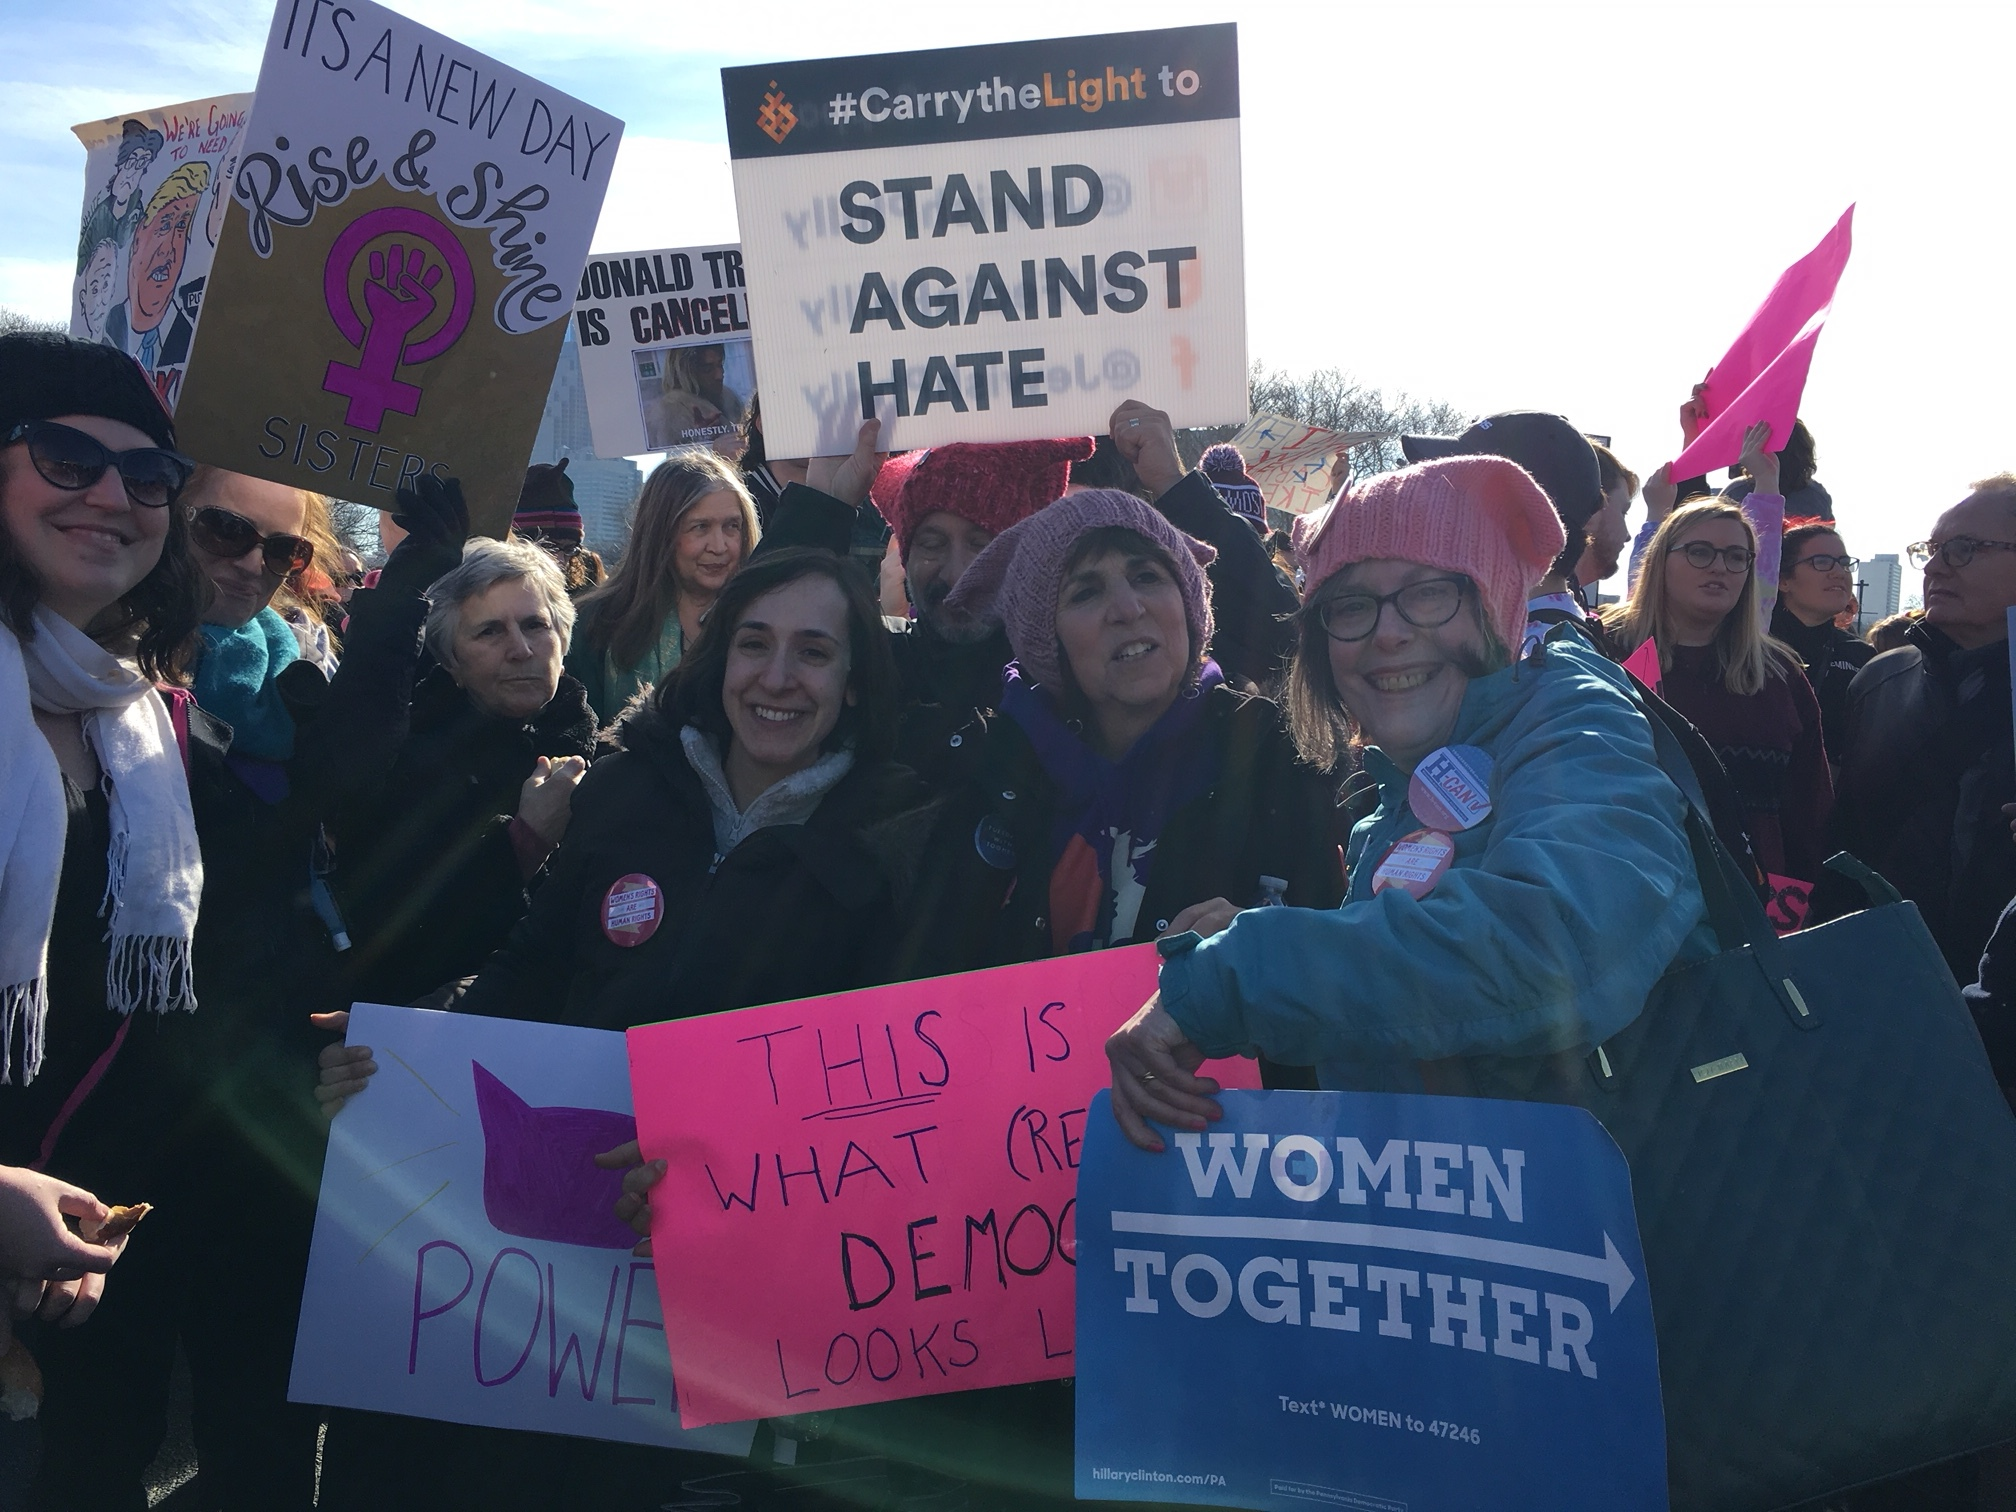 Tens of thousands of people came to the Philadelphia Women's March on January 21, 2017. H-CAN was there.